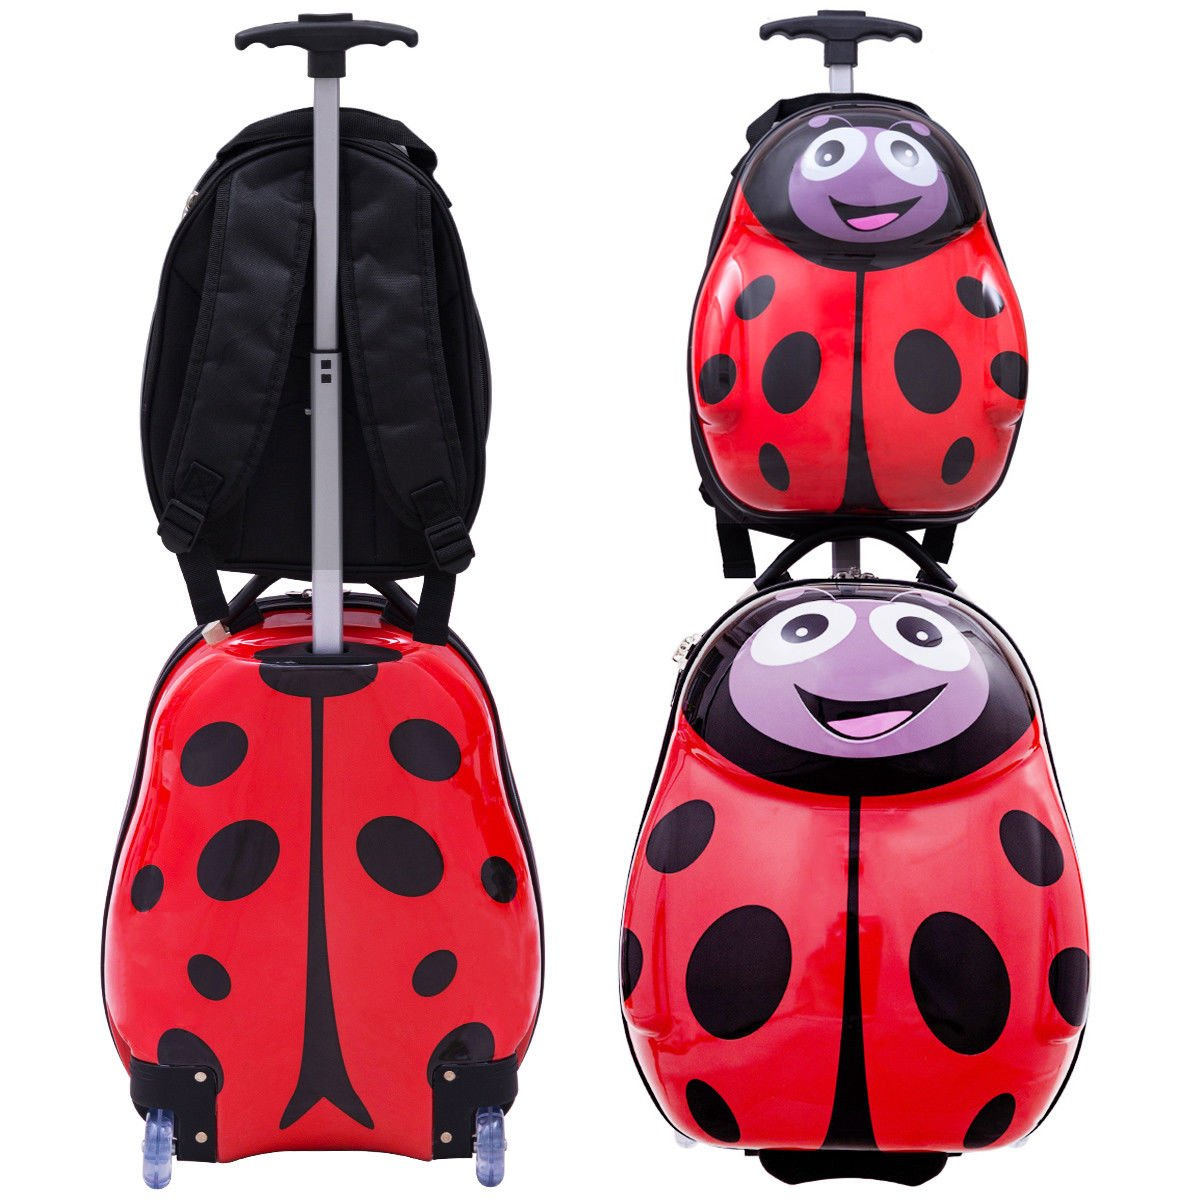 Goplus 2Pc 13'' 19'' Kids Carry On Luggage Set Travel Trolley Suitcase (Ladybug) by Goplus (Image #6)